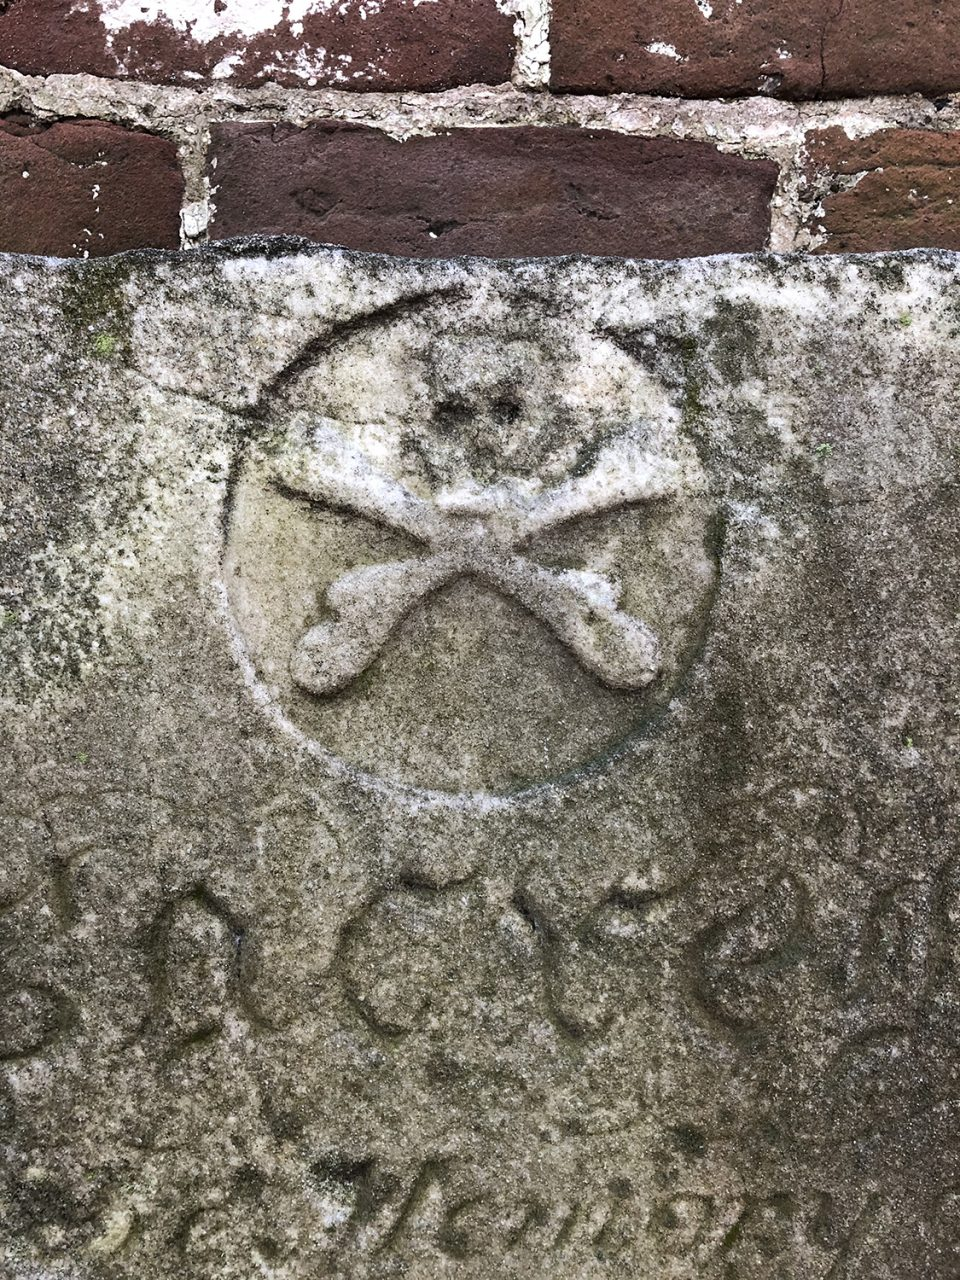 Skull and cross bones on an antique grave stone in Savannah's Colonial Cemetery.